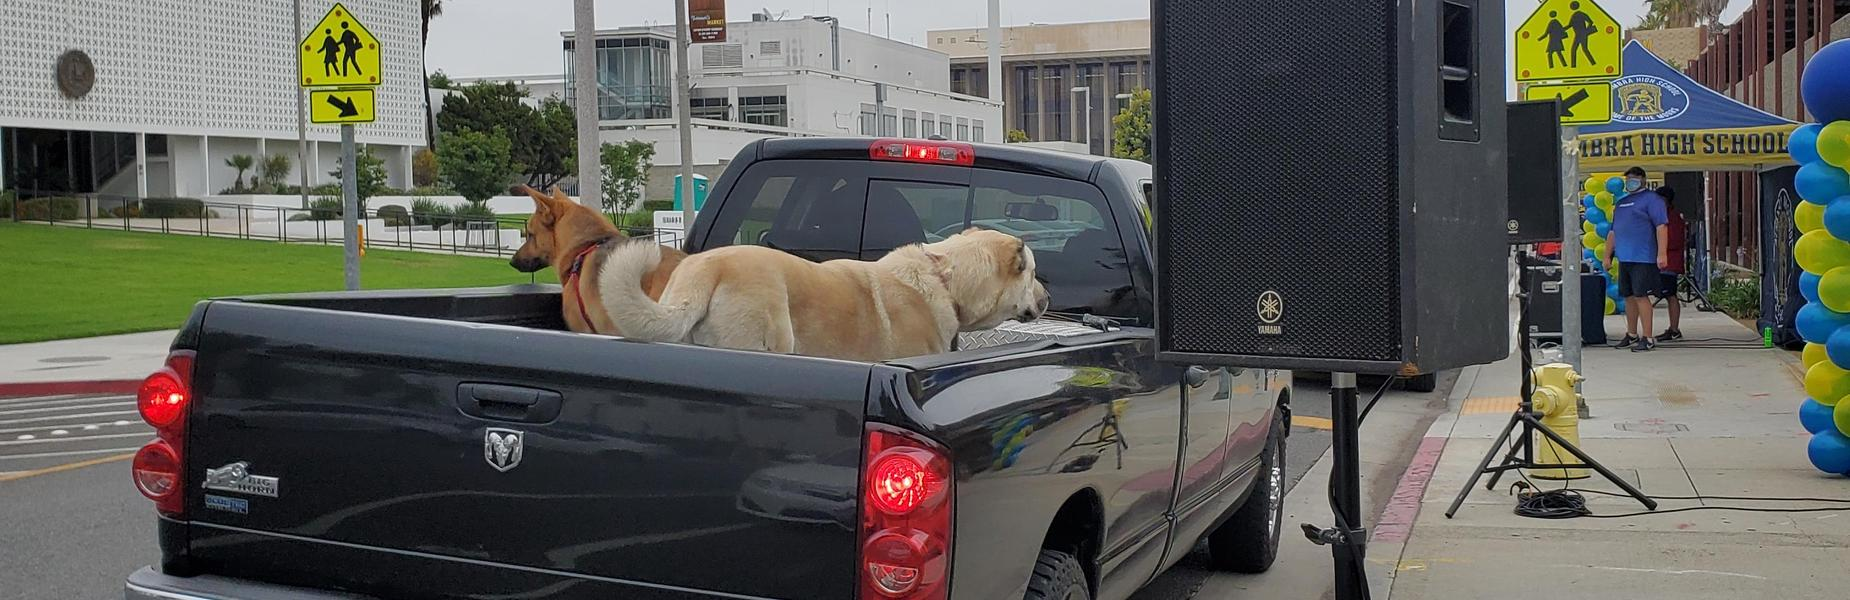 Graduation Drive Thru - June 7th, 2021 (Pets come to support!)